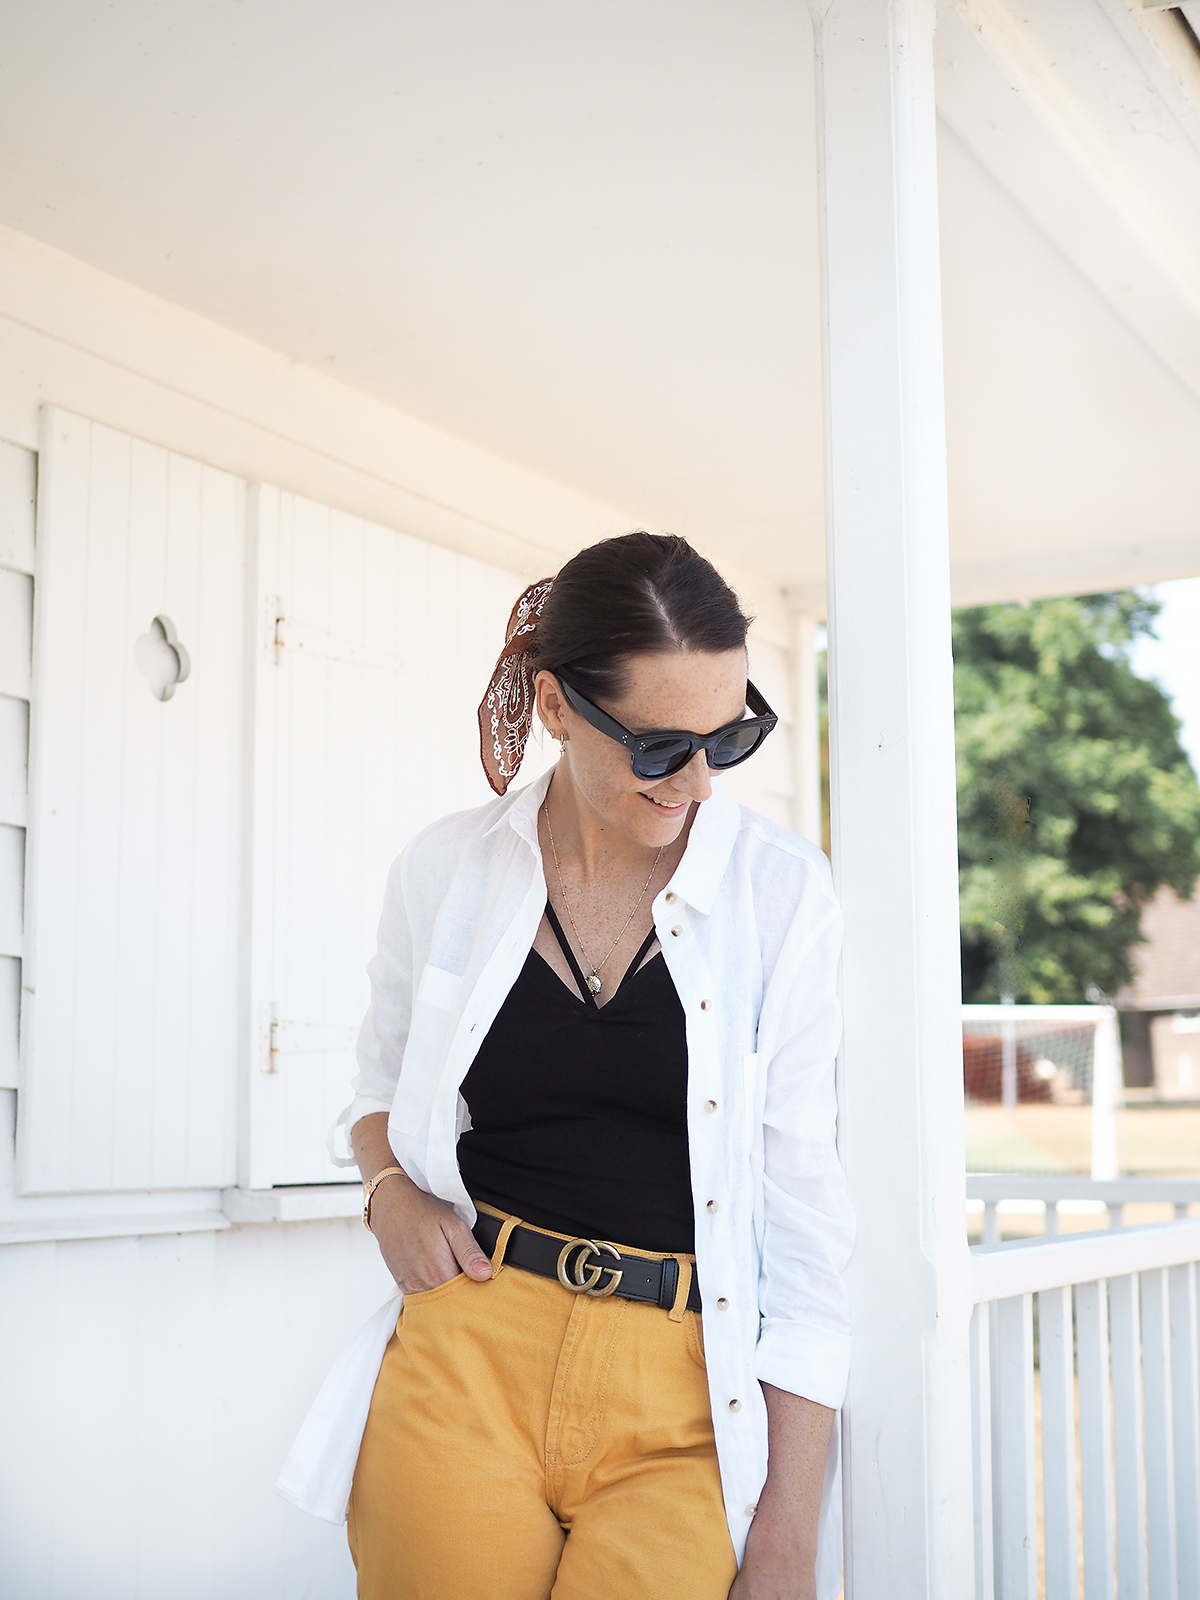 primark haul linen shirt and mustard jeans outfit